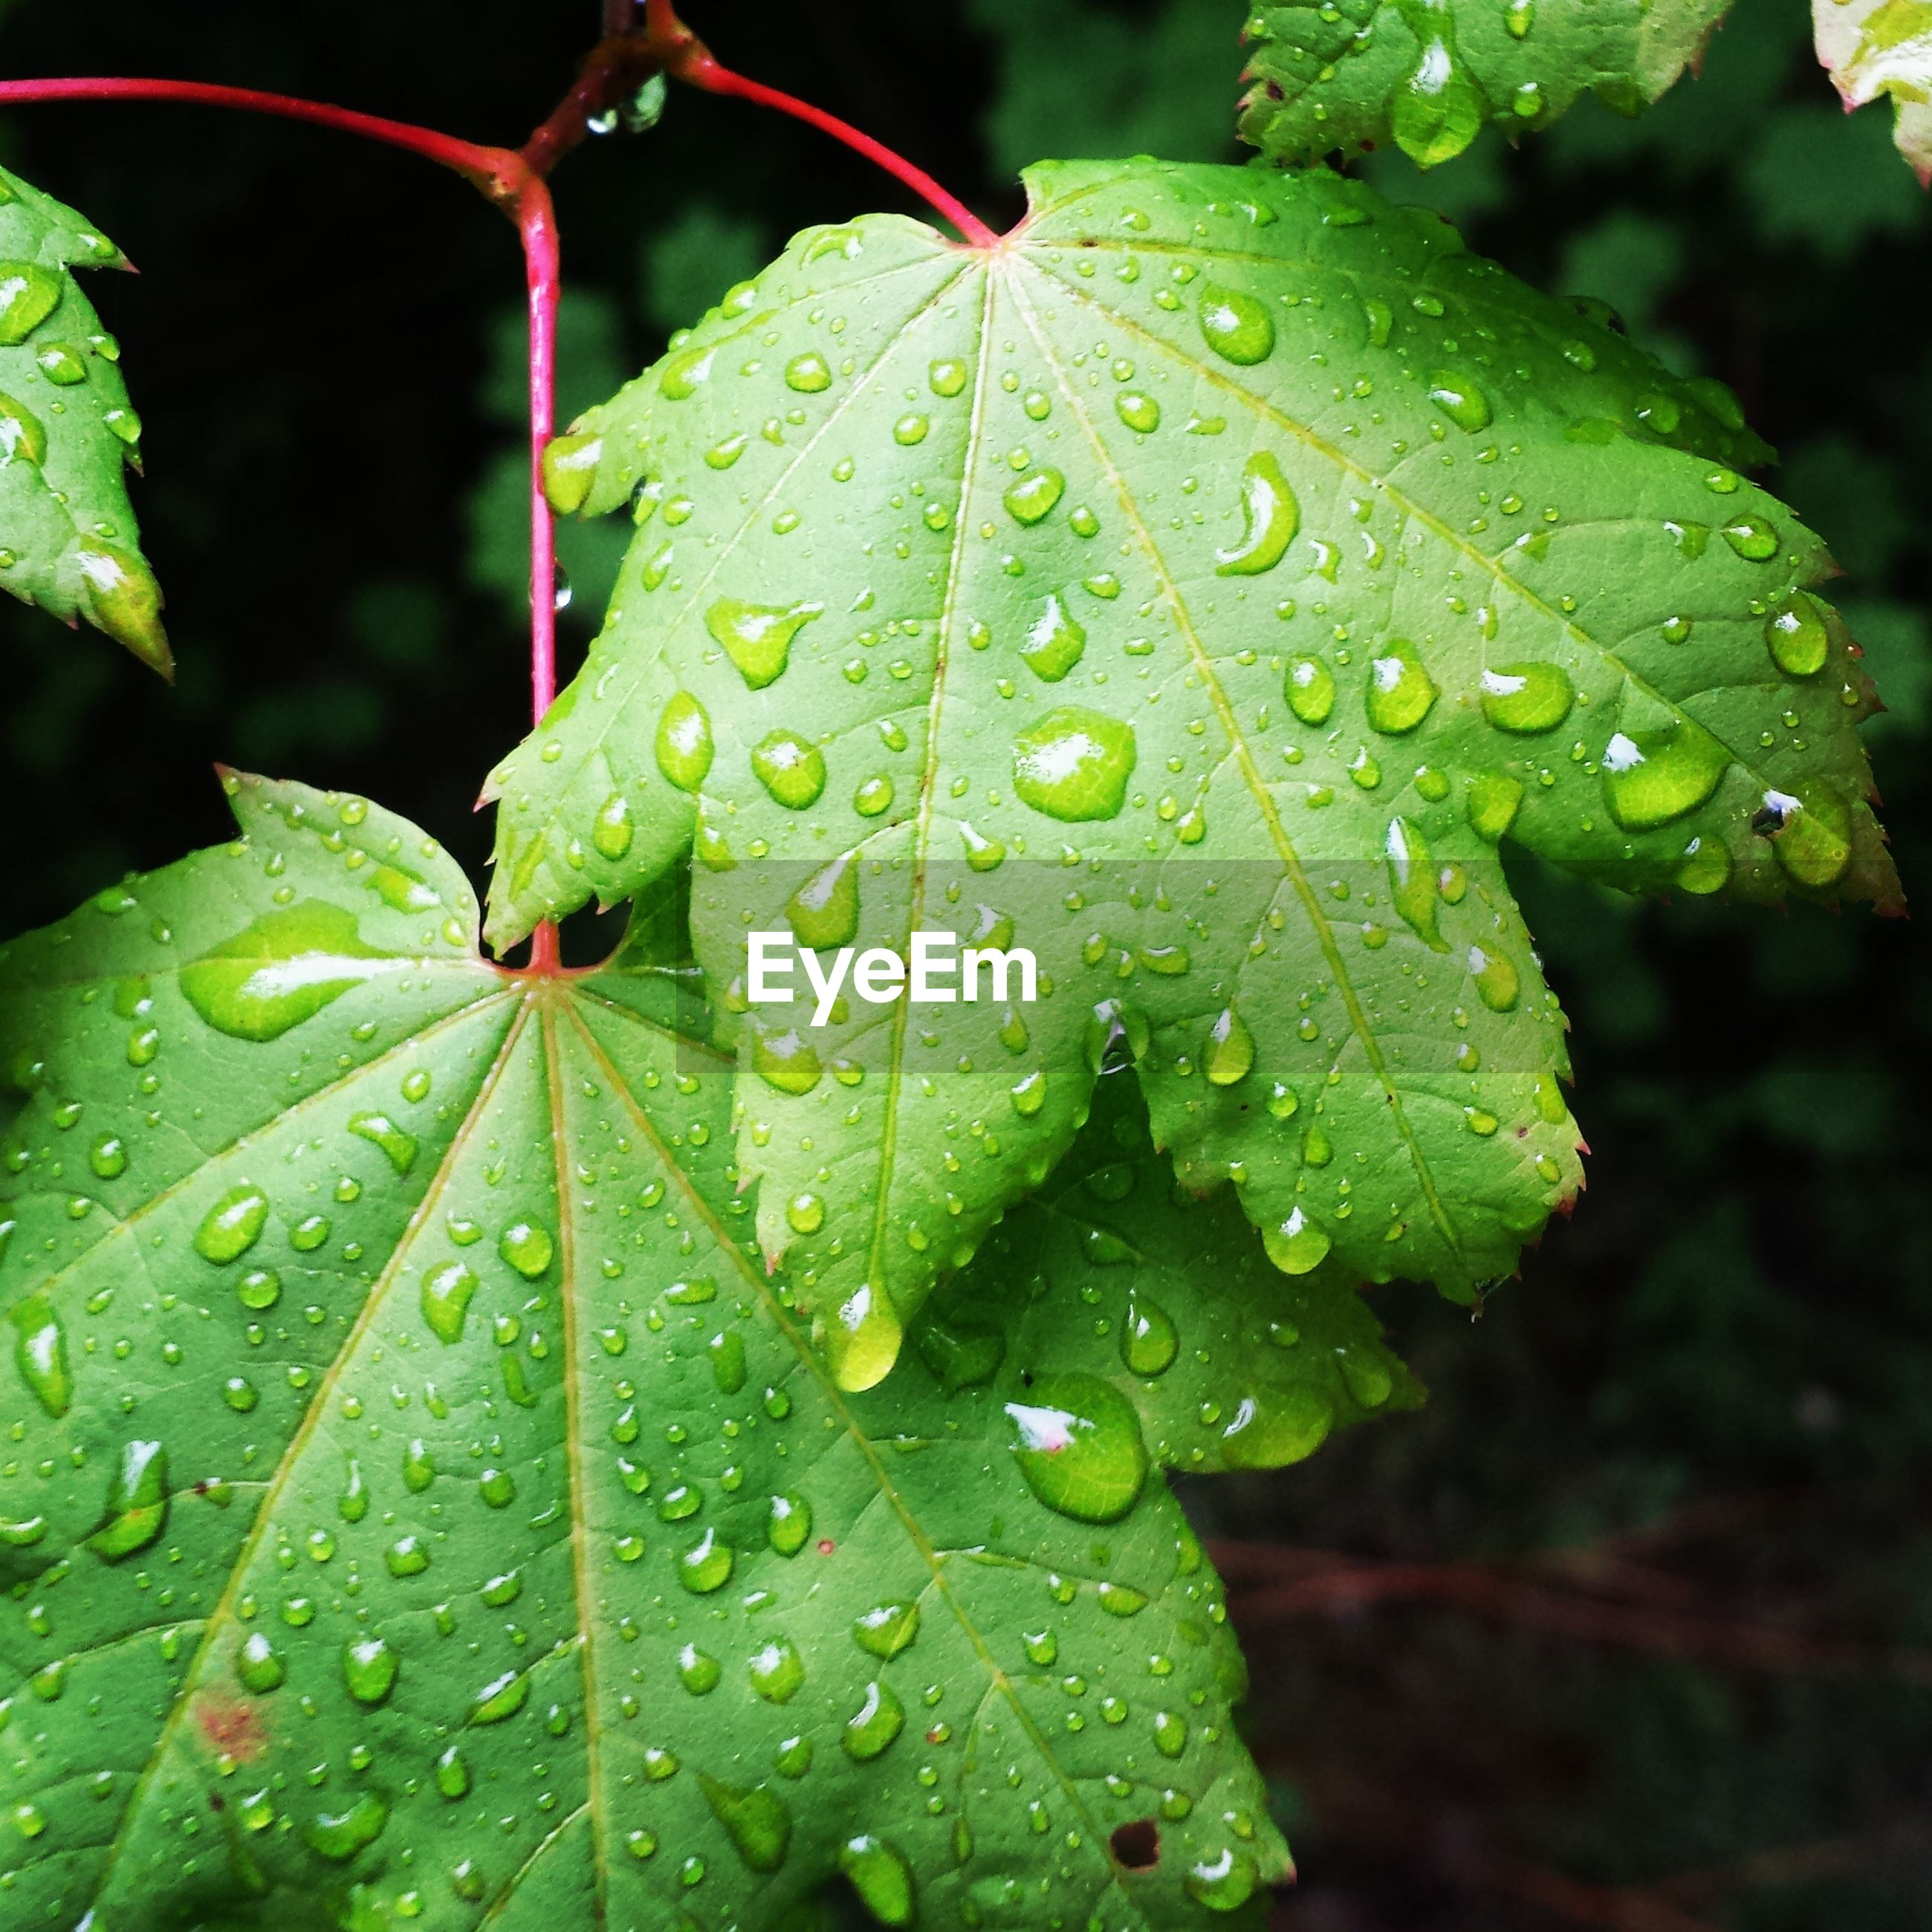 leaf, drop, water, wet, close-up, growth, green color, leaf vein, dew, freshness, focus on foreground, nature, raindrop, plant, beauty in nature, fragility, rain, season, selective focus, day